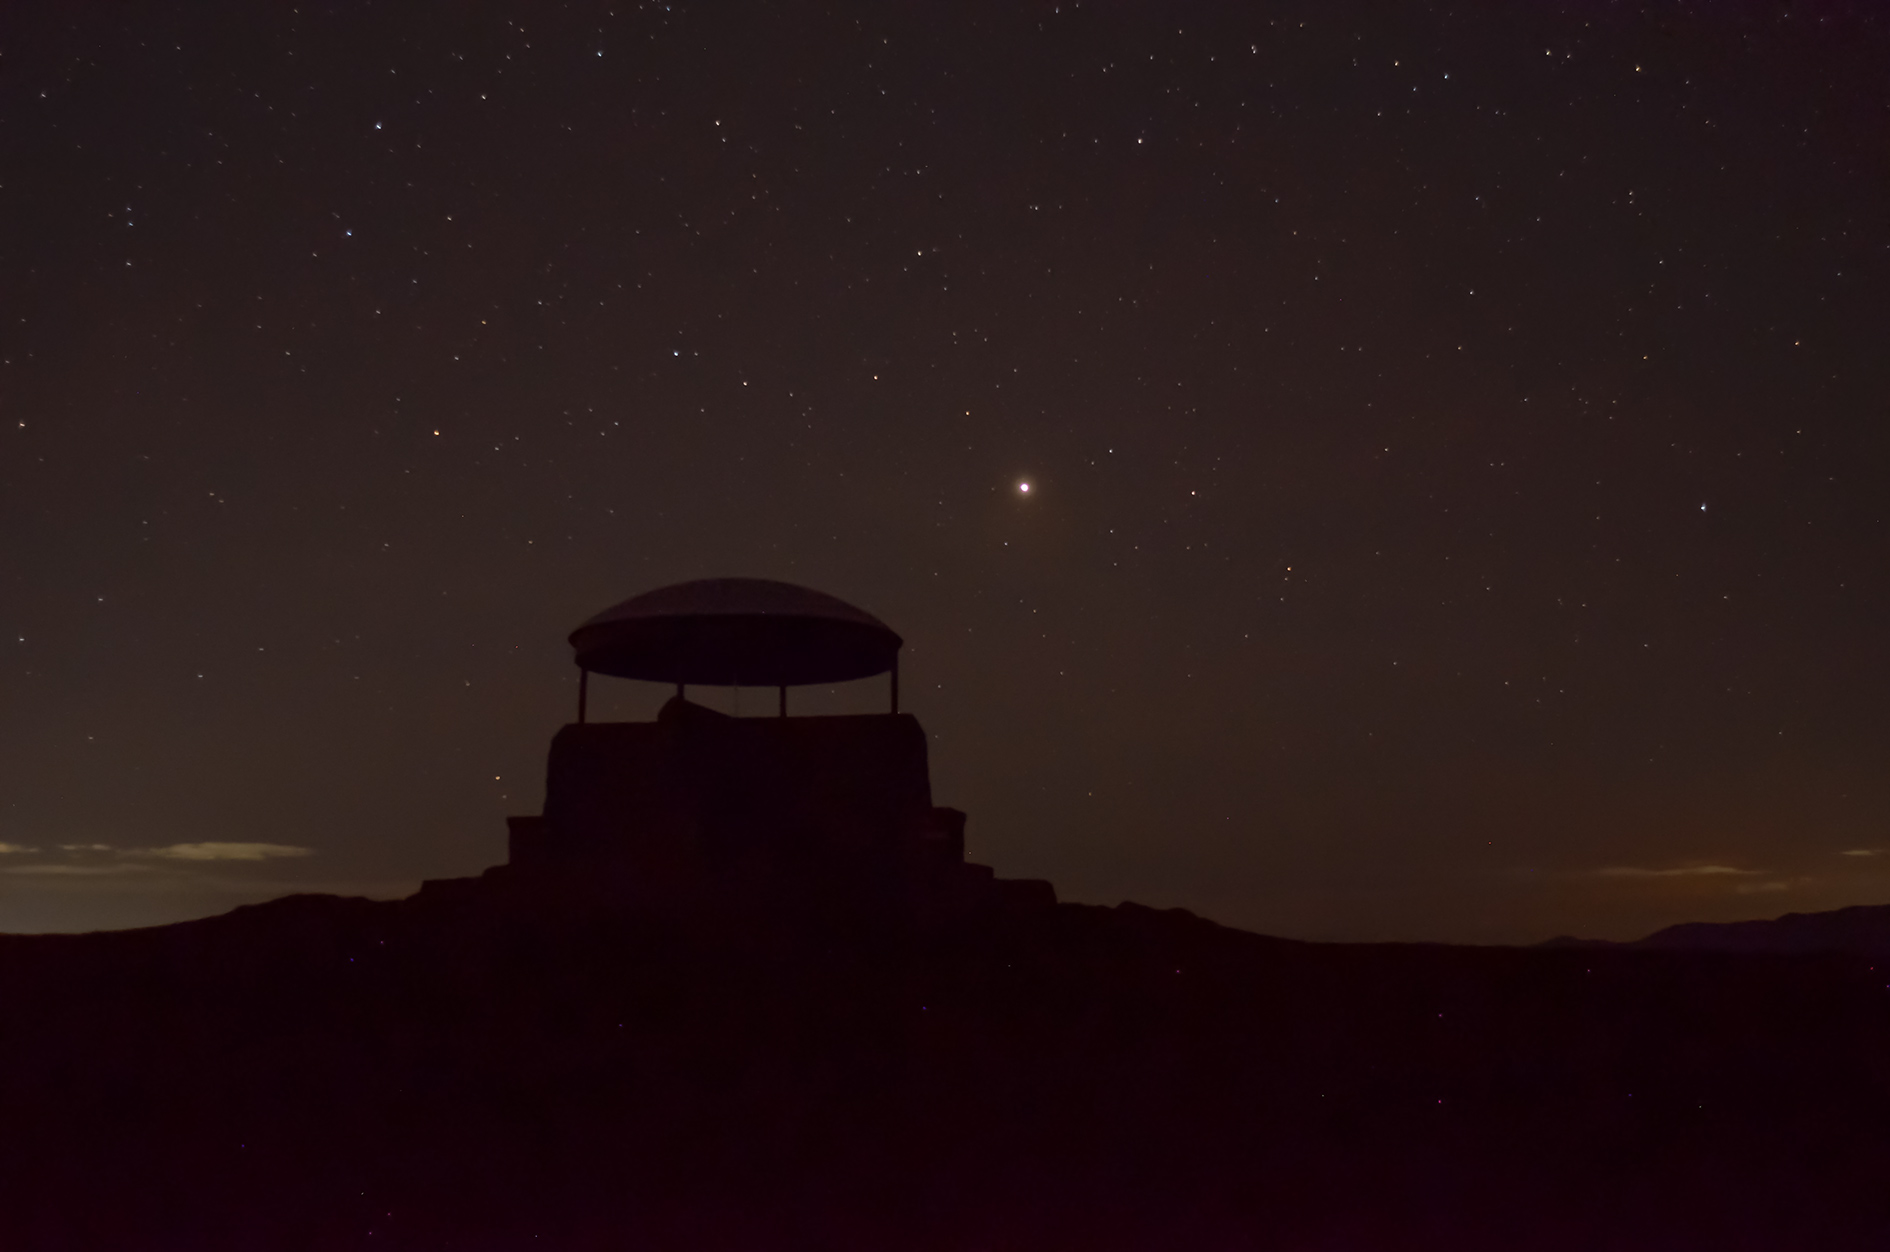 Mars and the mushroom, Scout Scar. 15th October, 05:50hrs, 24mm, 5sec, f2.8, iso 1600